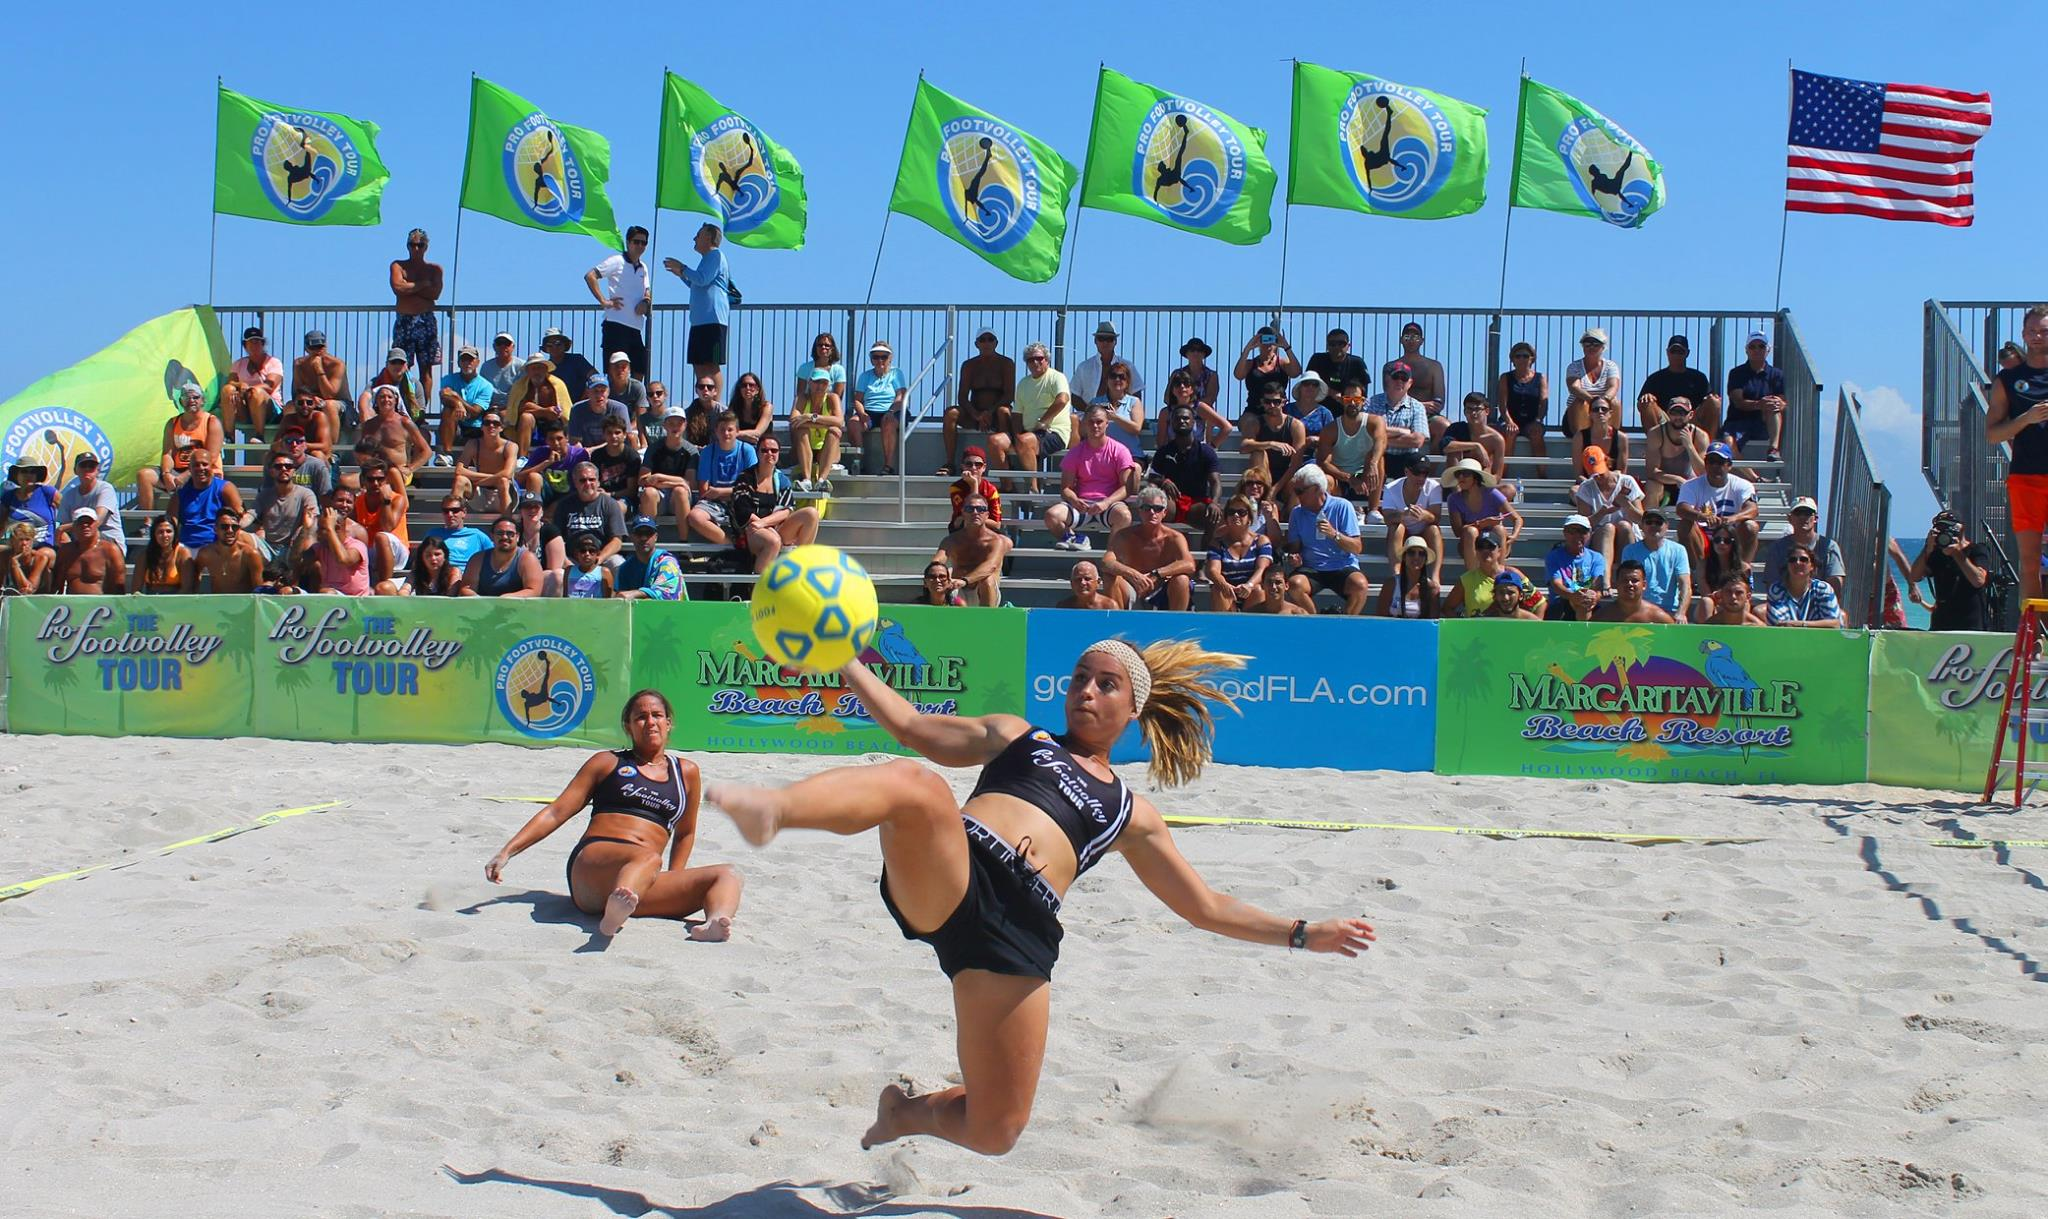 From RIO 2016 to South Beach, expect some great play from Melony Poviones